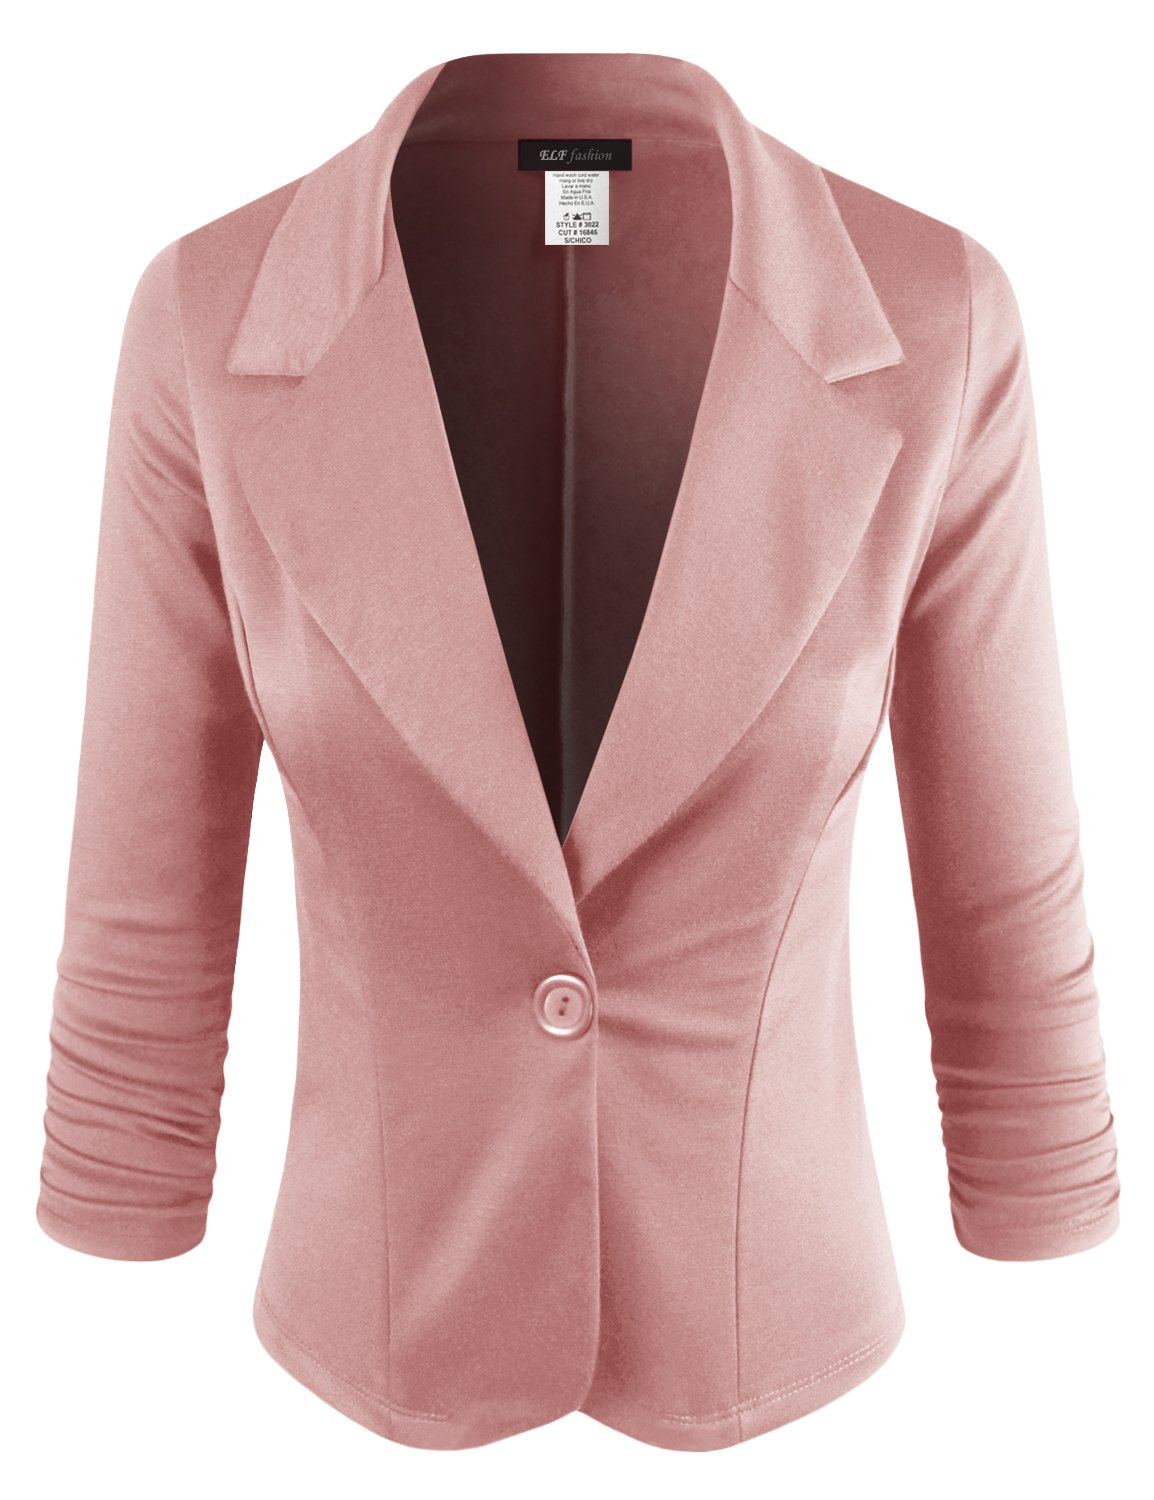 ELF FASHION Women Casual Work Knit Office Blazer Jacket Made in USA (Size S~3XL) Pink 1XL